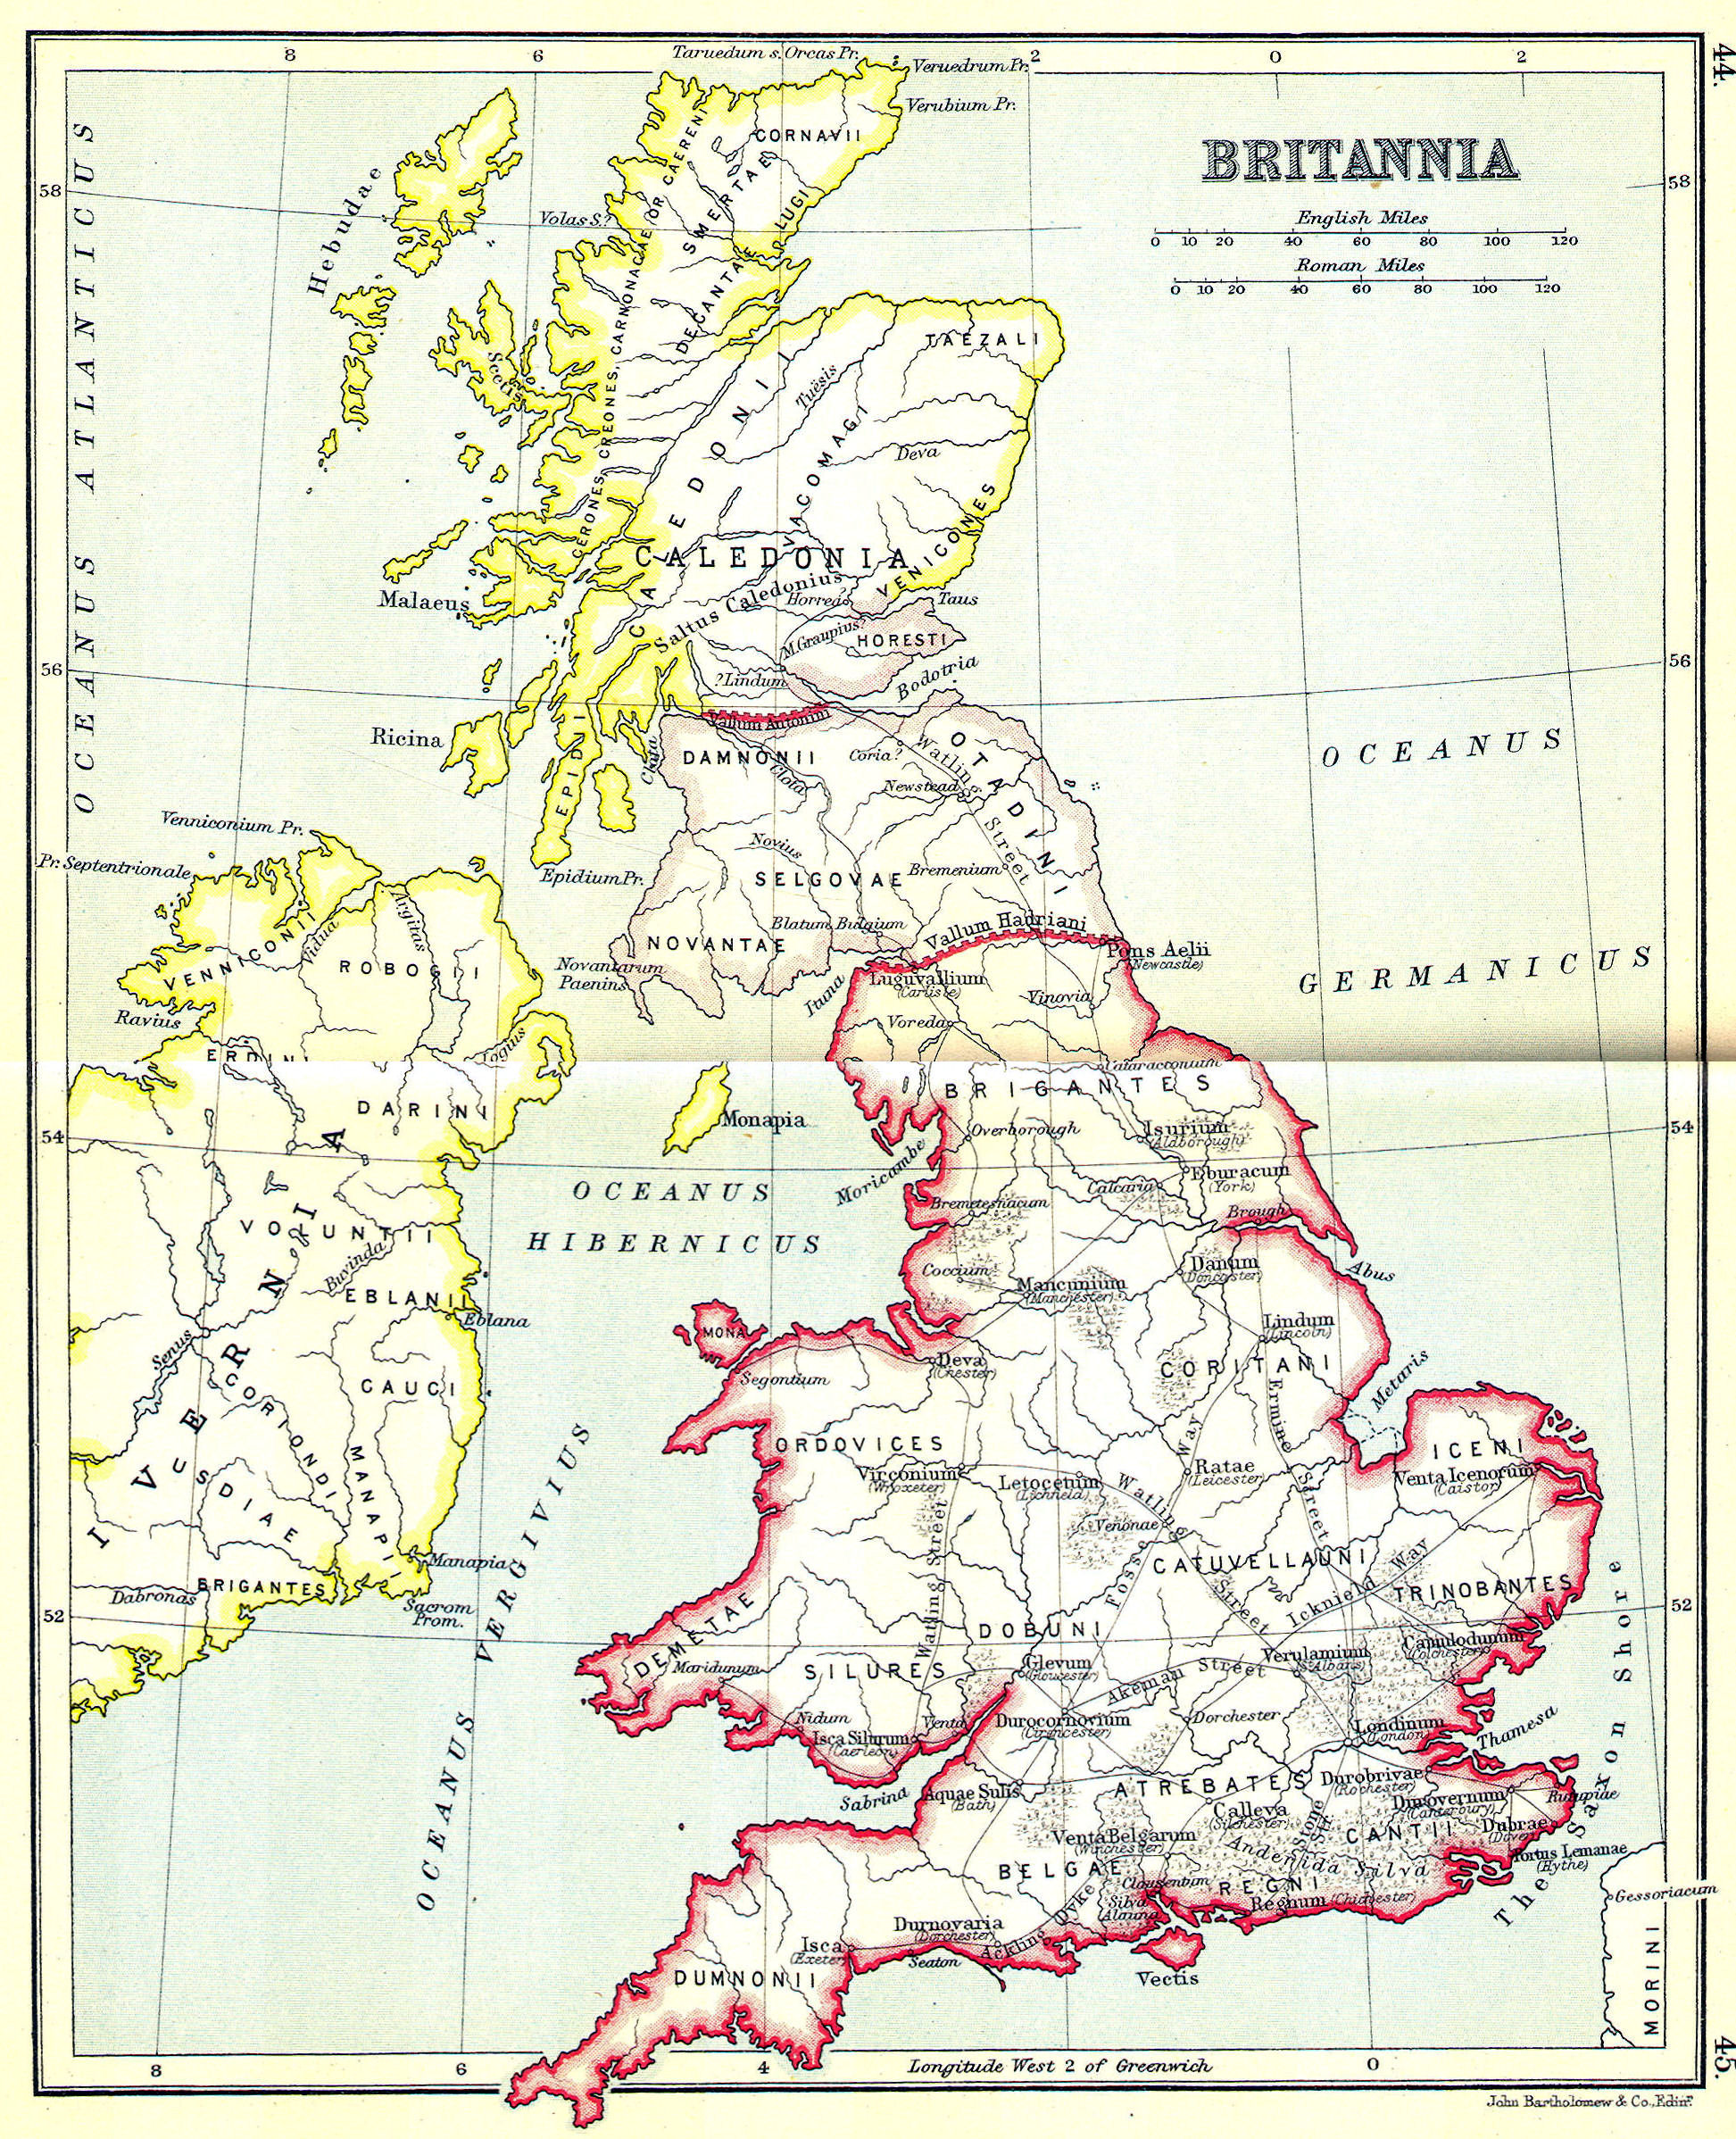 British Middle Ages Clical Curriculum — Heritage History — Revision on map of iceland, map of iberian peninsula, map of united kingdom, map of wales, map of britain, map of europe, map of scotland, map of london, map of czech republic, map of france, map of haiti, map of germany, map of england, map of norway, map of british columbia, map of middle east, map of china, map of carpathian mountains, map of north carolina, map of south america,